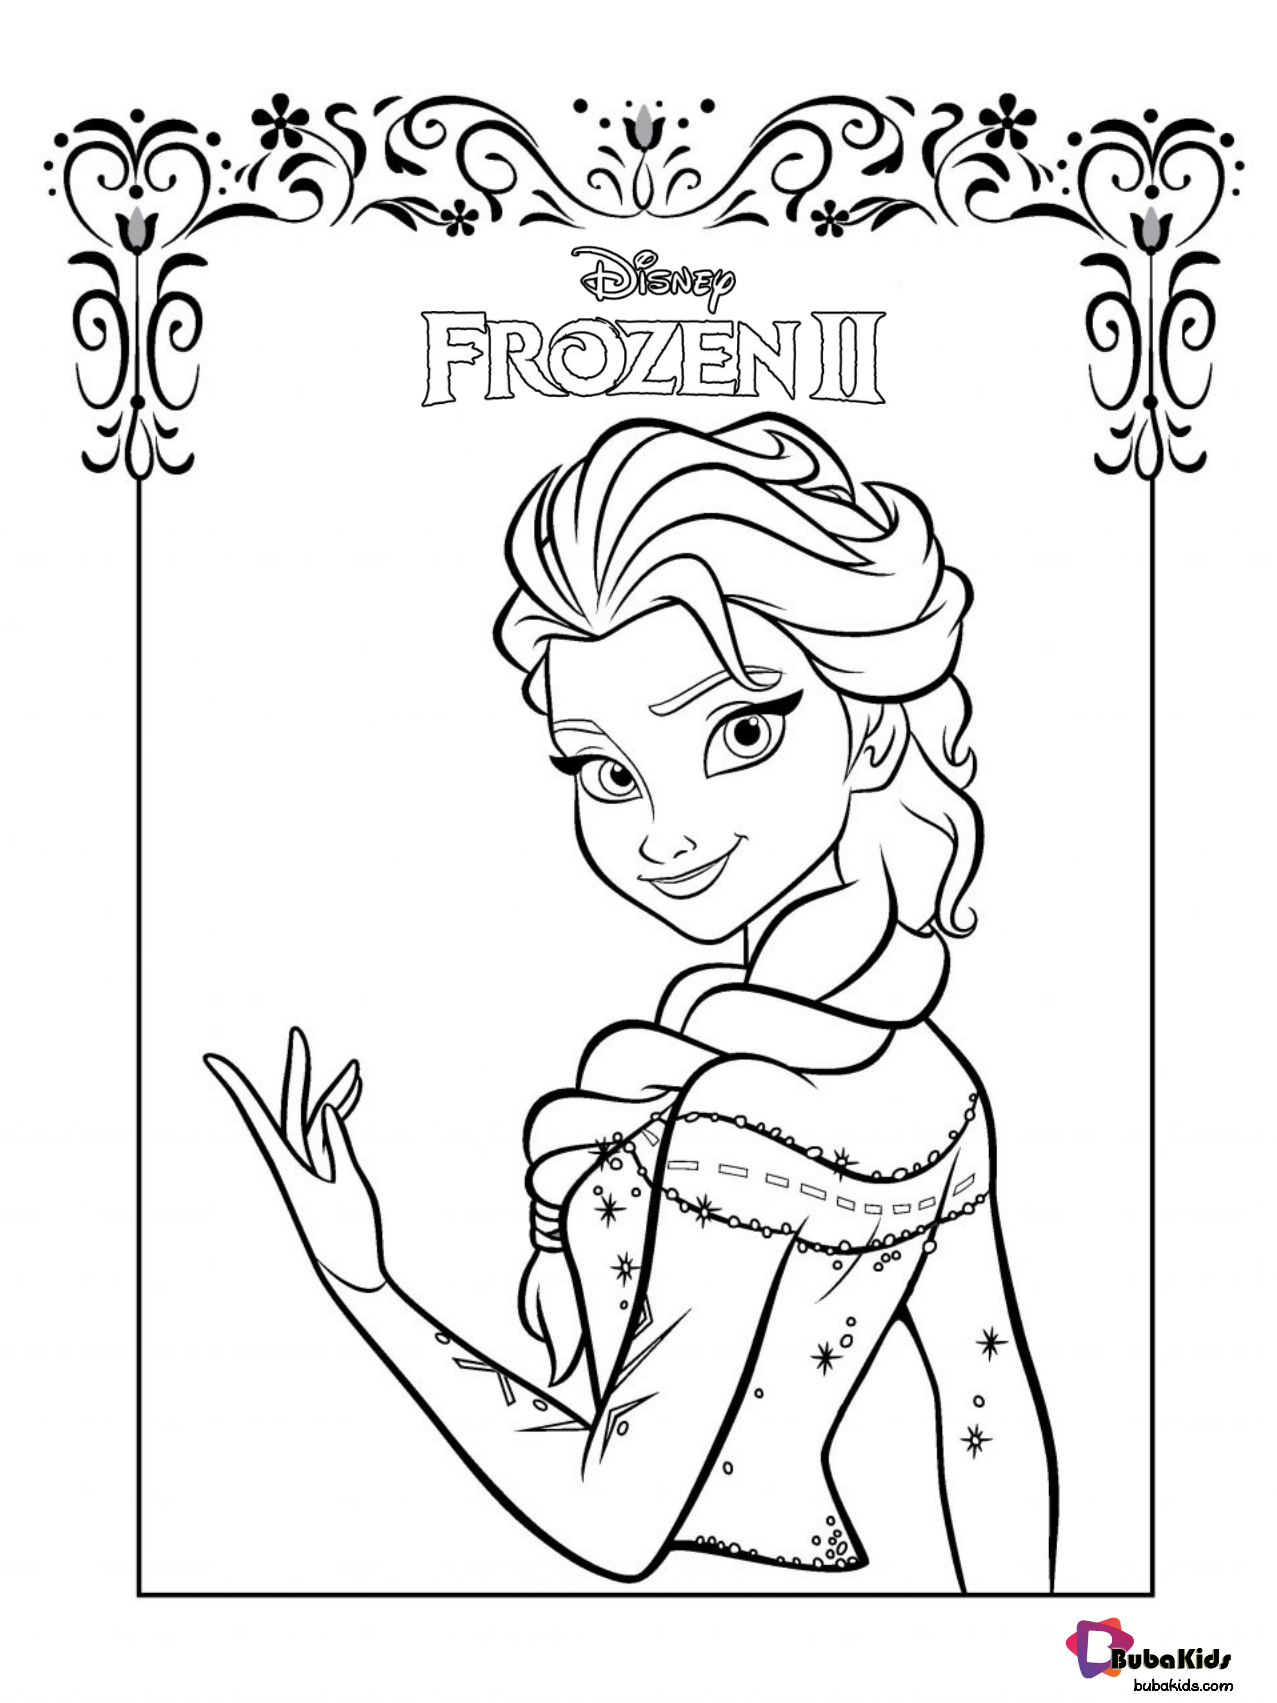 Frozen 2 Beautiful Queen Elsa Coloring Page Free Download And Printable Collection Of Cartoon Colo In 2020 Frozen Coloring Pages Elsa Coloring Pages Frozen Coloring